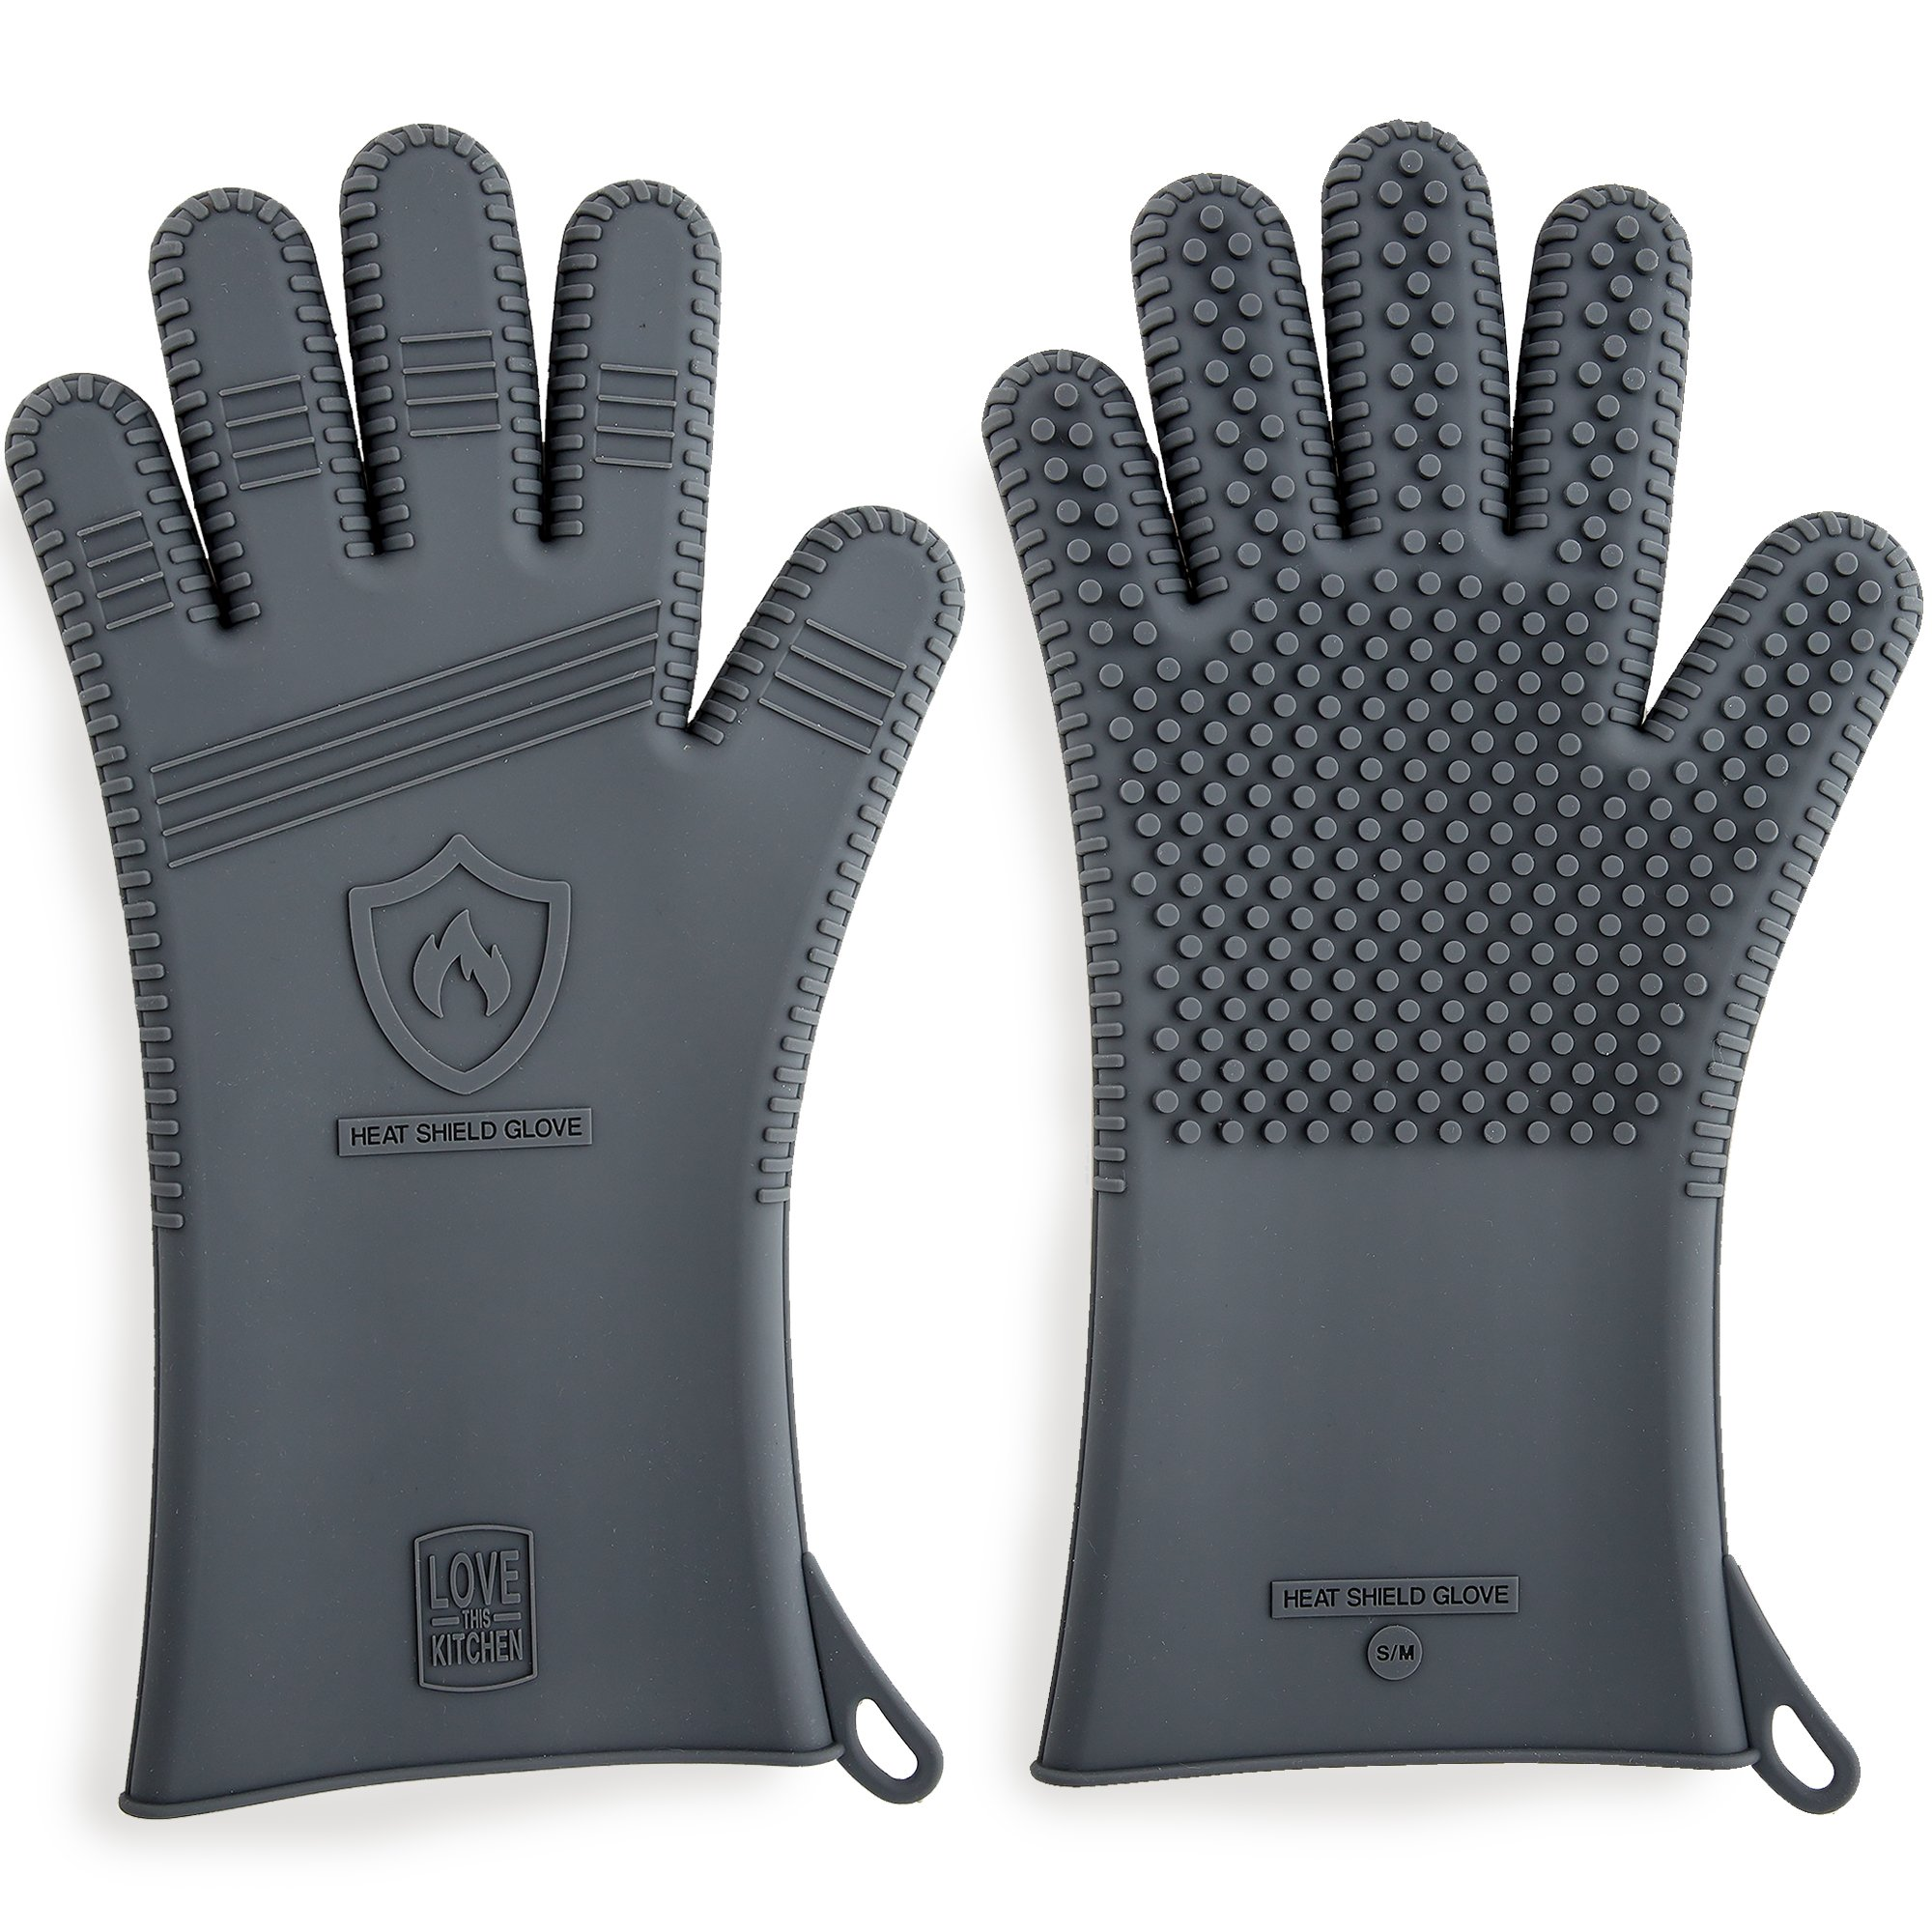 Premium Silicone BBQ Gloves & Grill Gloves in Attractive Gift Box. 13.5 inch Long for Better Protection. These Grilling Gloves are Best For Barbecue & Oven, Heat Resistant to 442 F (Size: XL, 1 Pair)